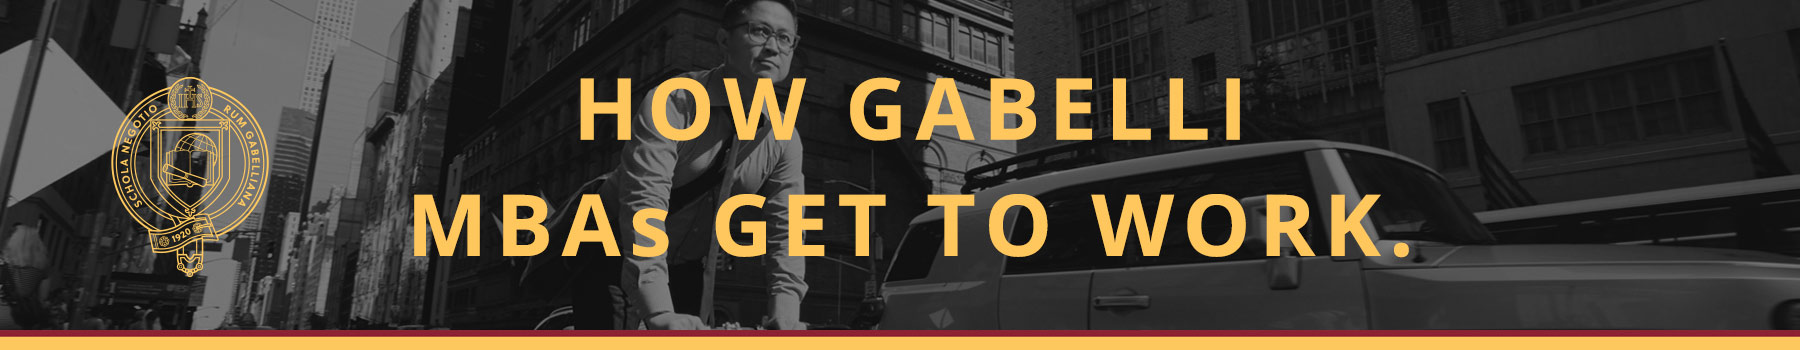 How Gabelli MBAs get to work